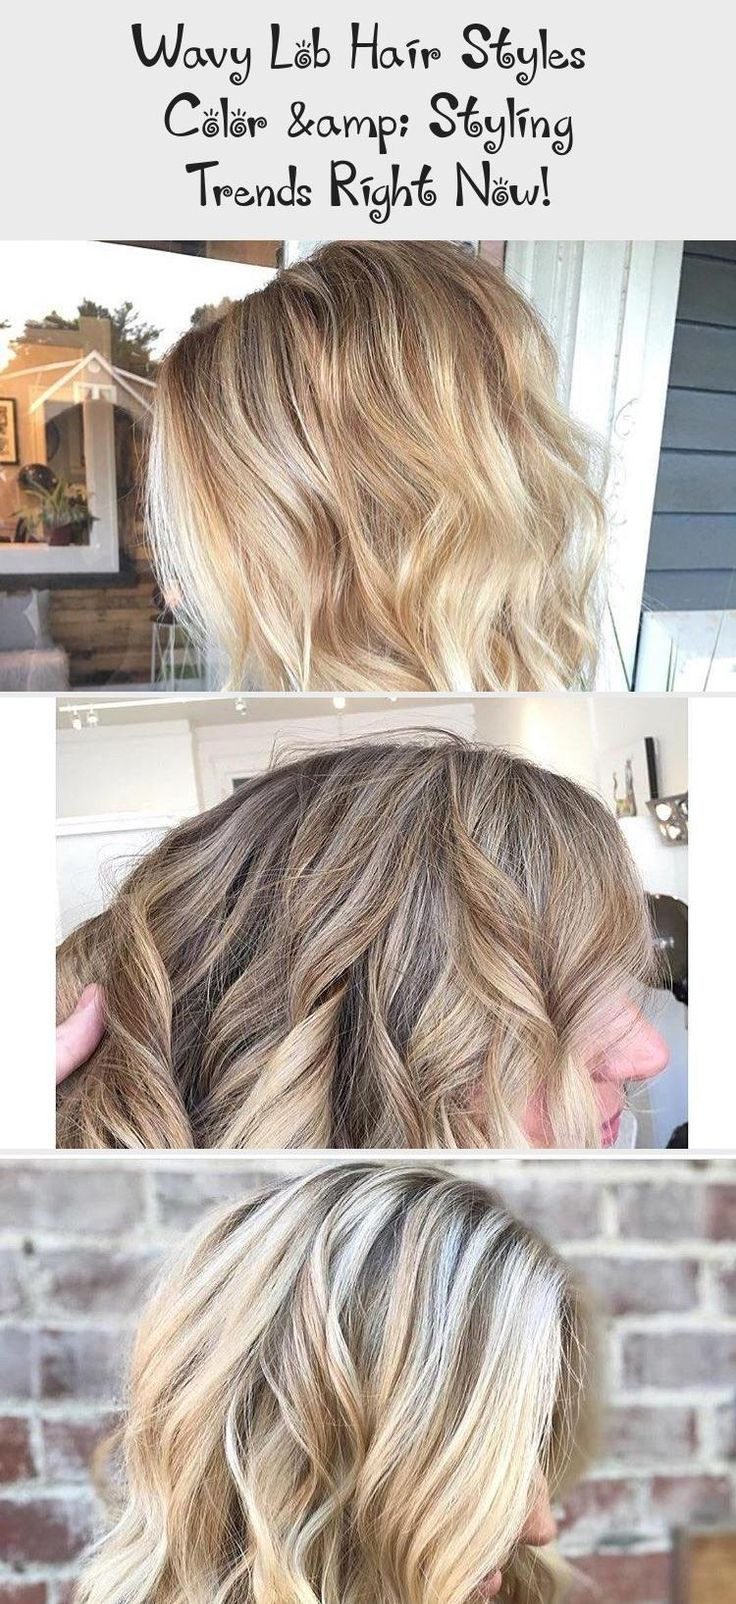 Wavy Lob Hair Styles - Color & Styling Trends Right Now! Wavy lob hairstyle are not only easy to ...